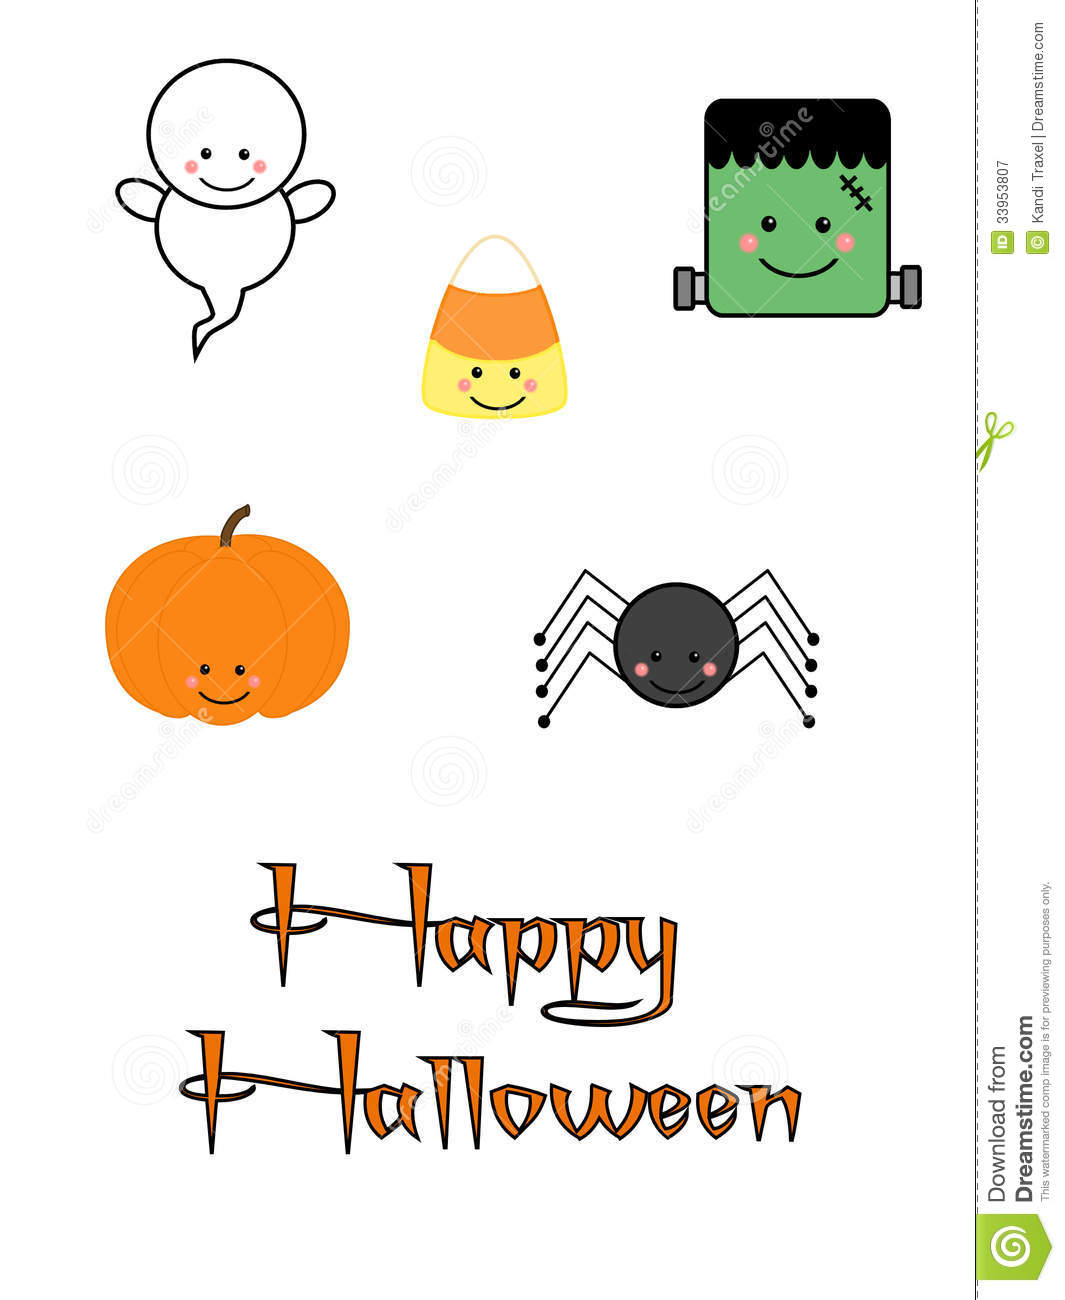 Cute halloween characters stock image illustration of for More clipart